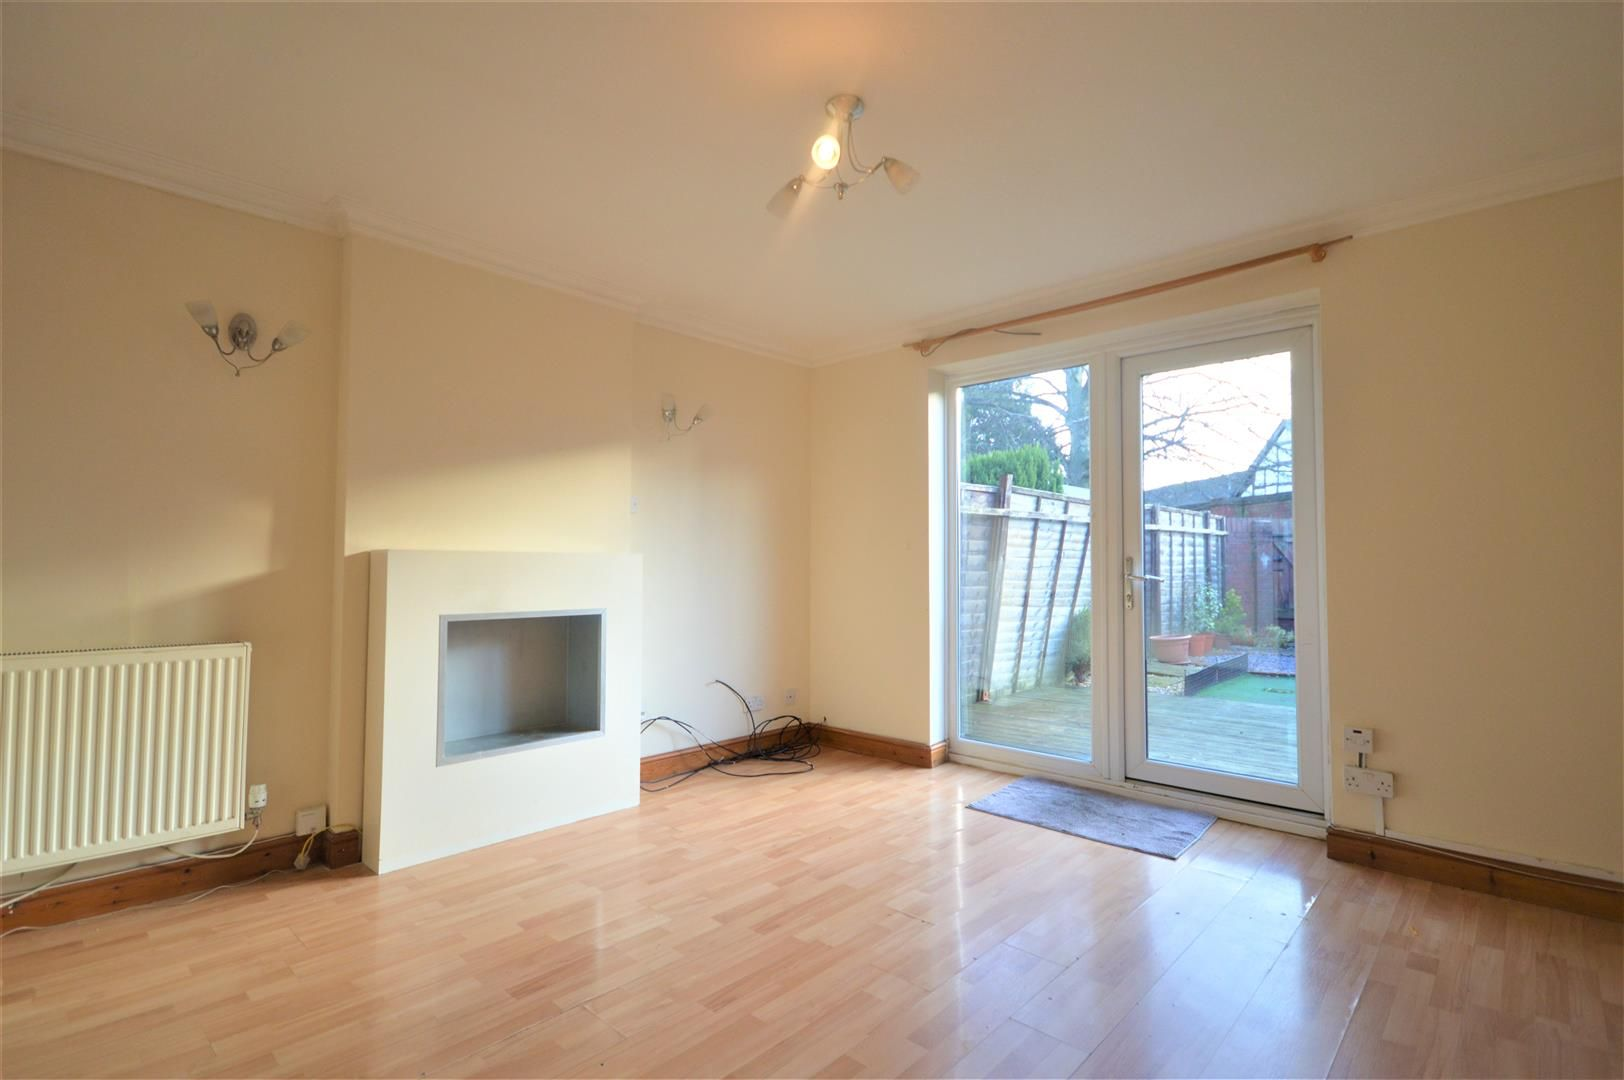 2 bed terraced for sale in Leominster 4